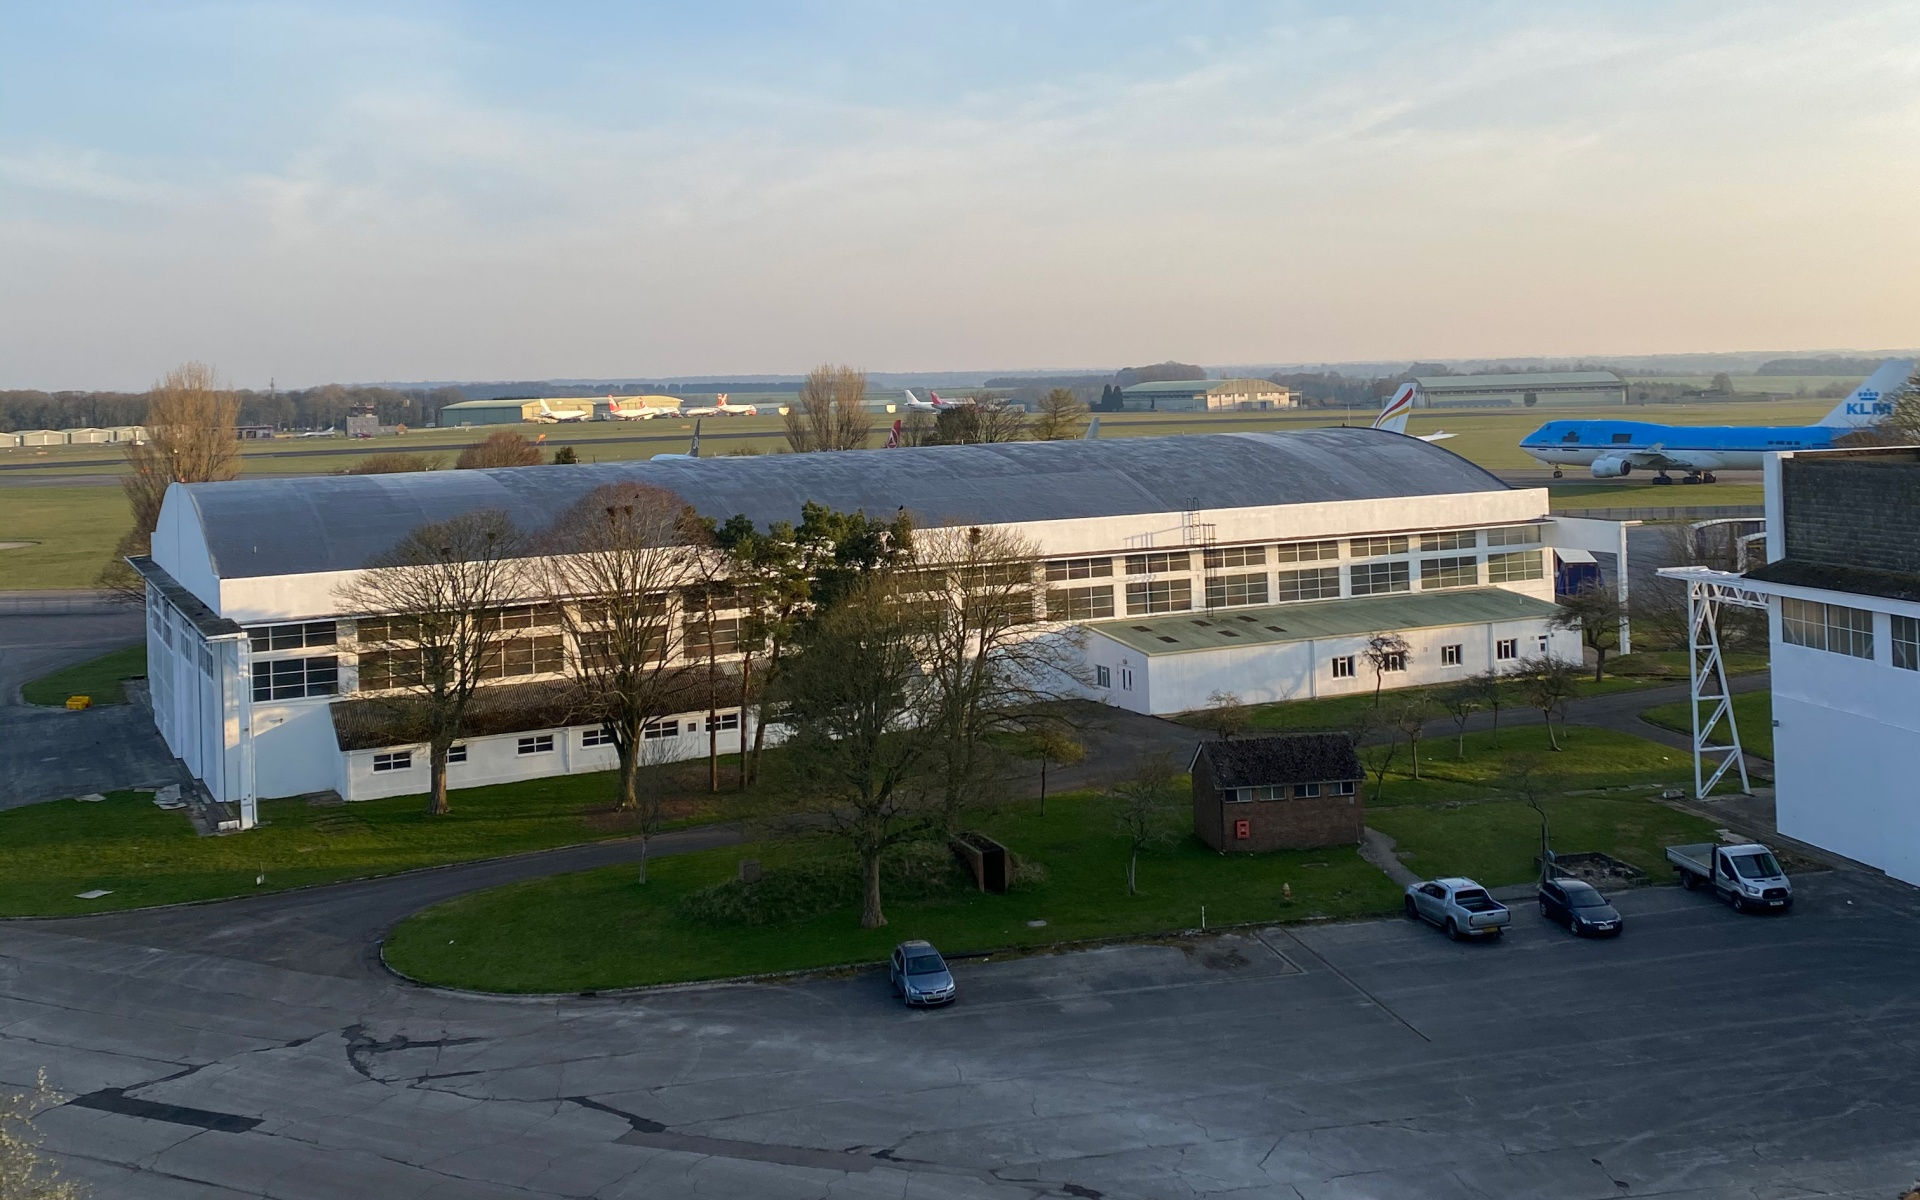 Kemble Enterprise Park